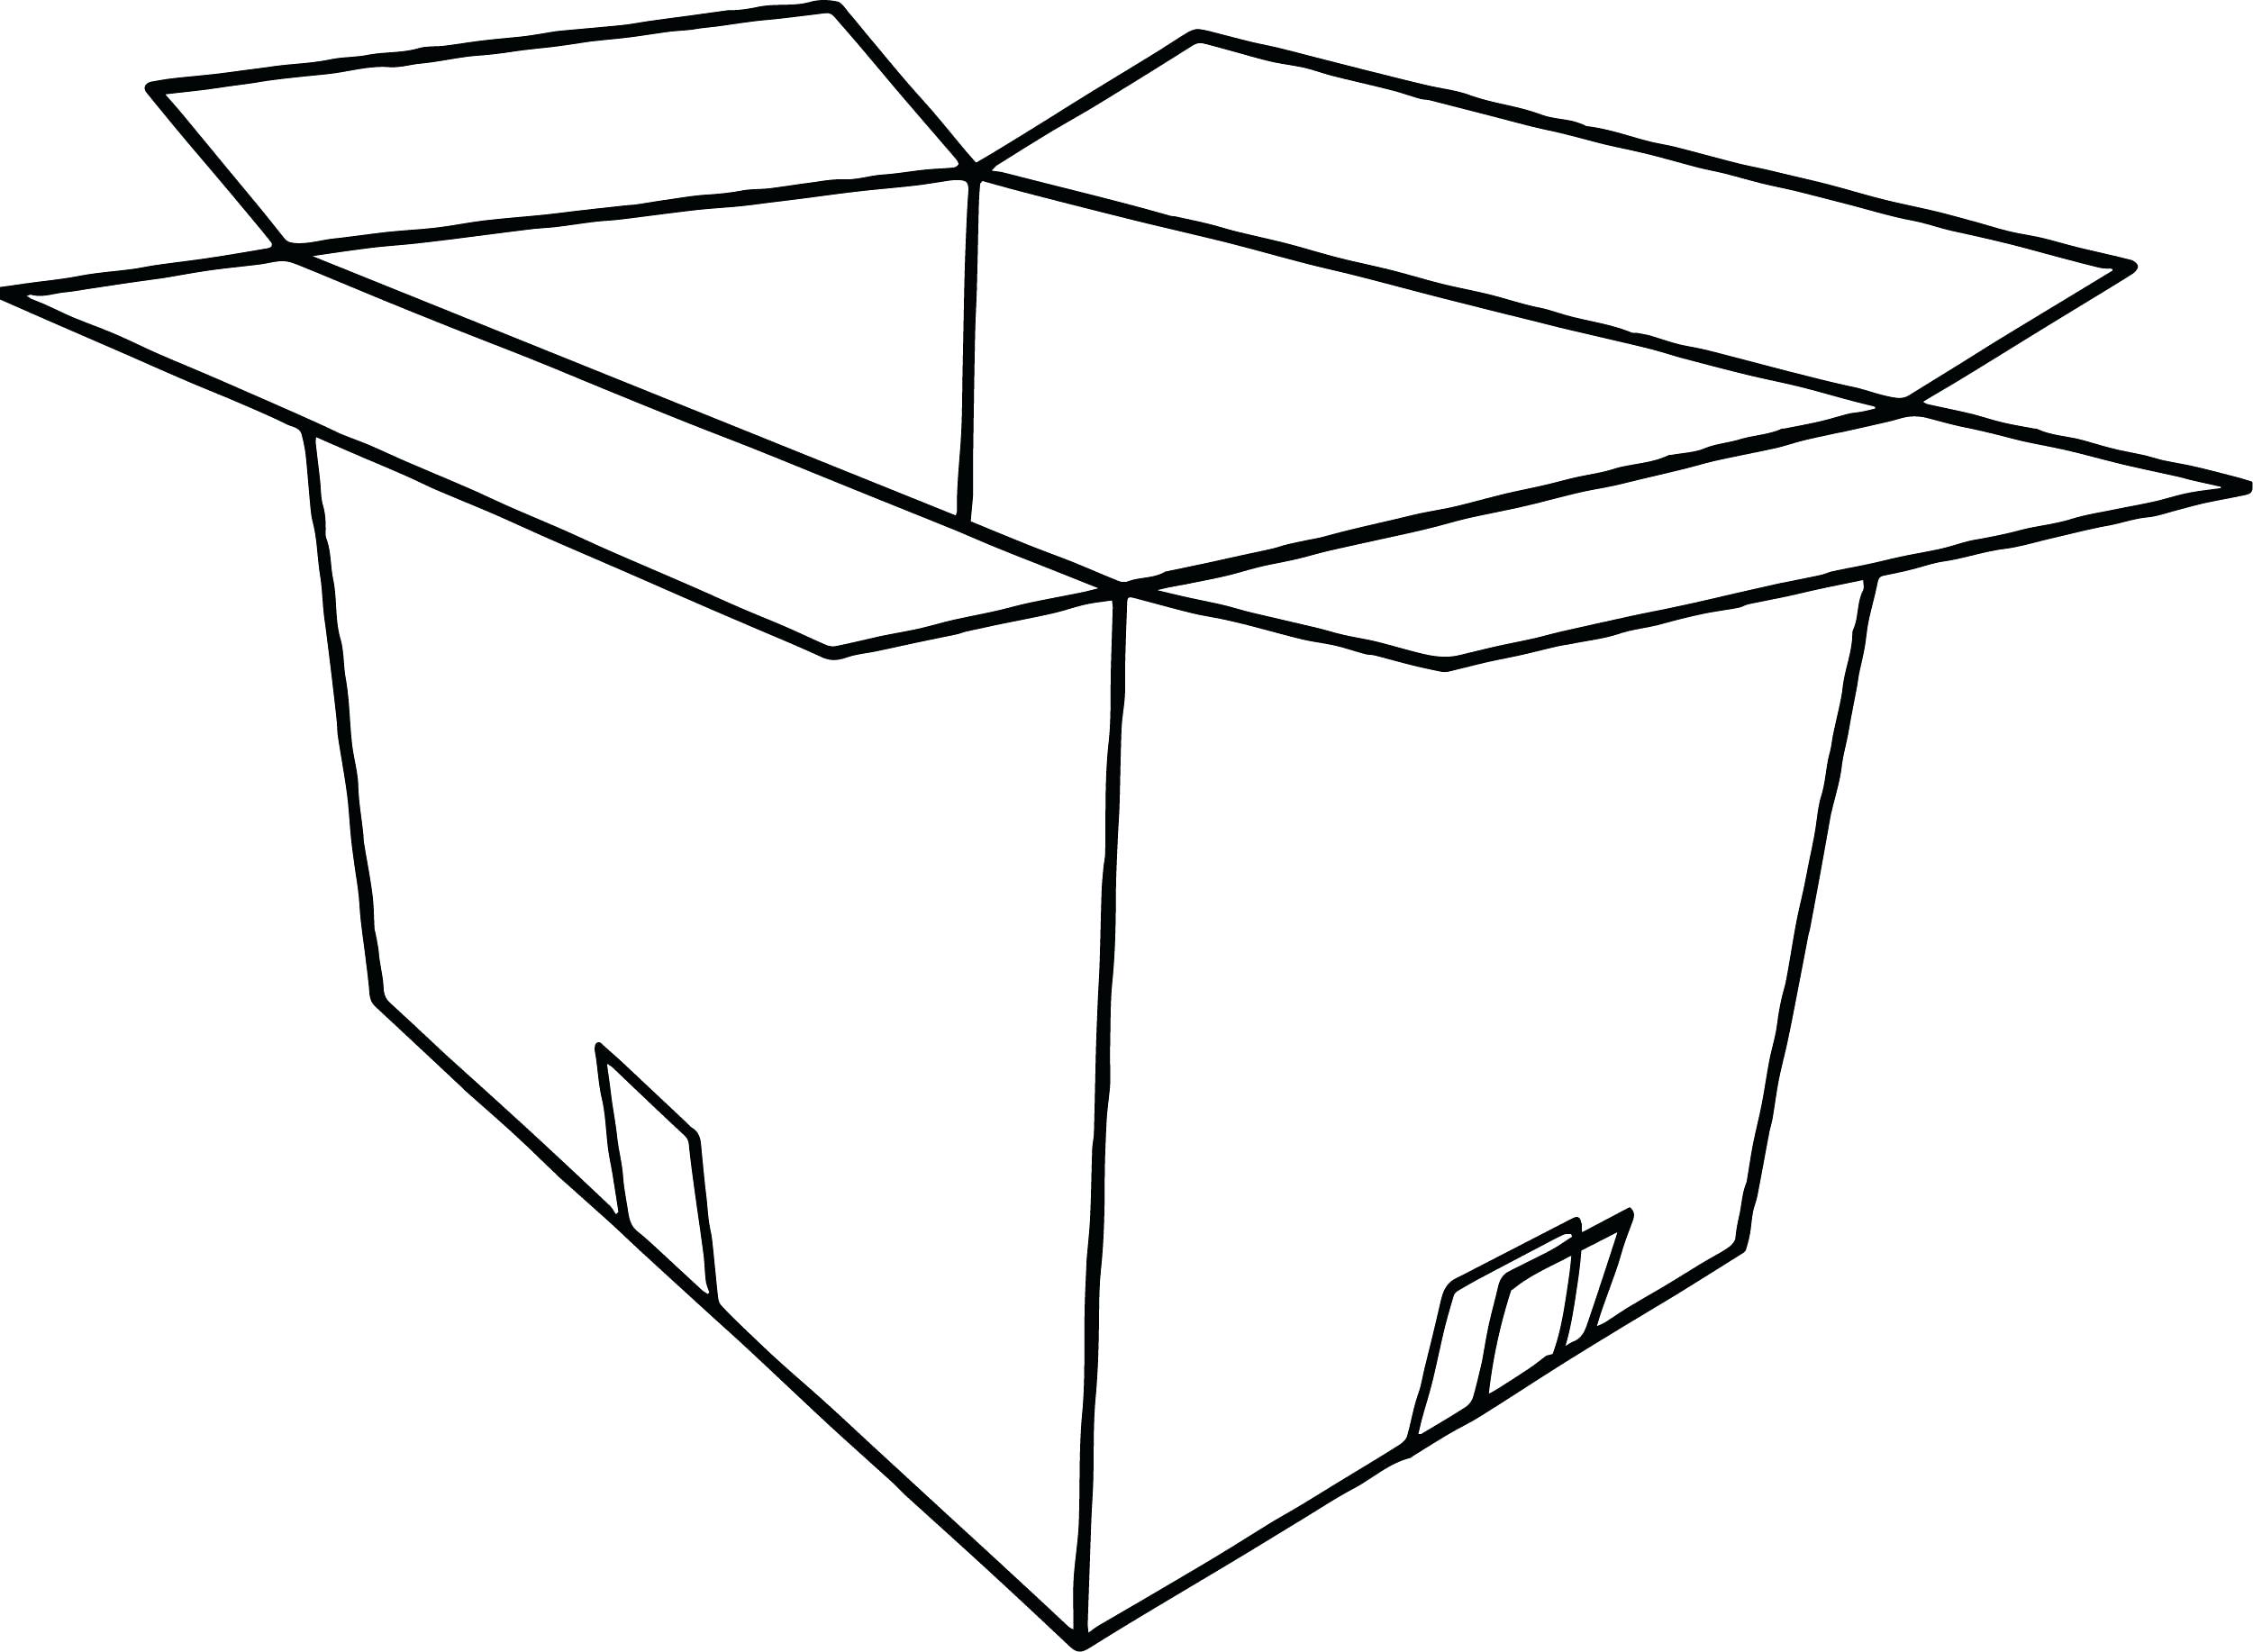 2501x1834 Brilliant Geometric Coloring Pages Adults With And 3d Games Online